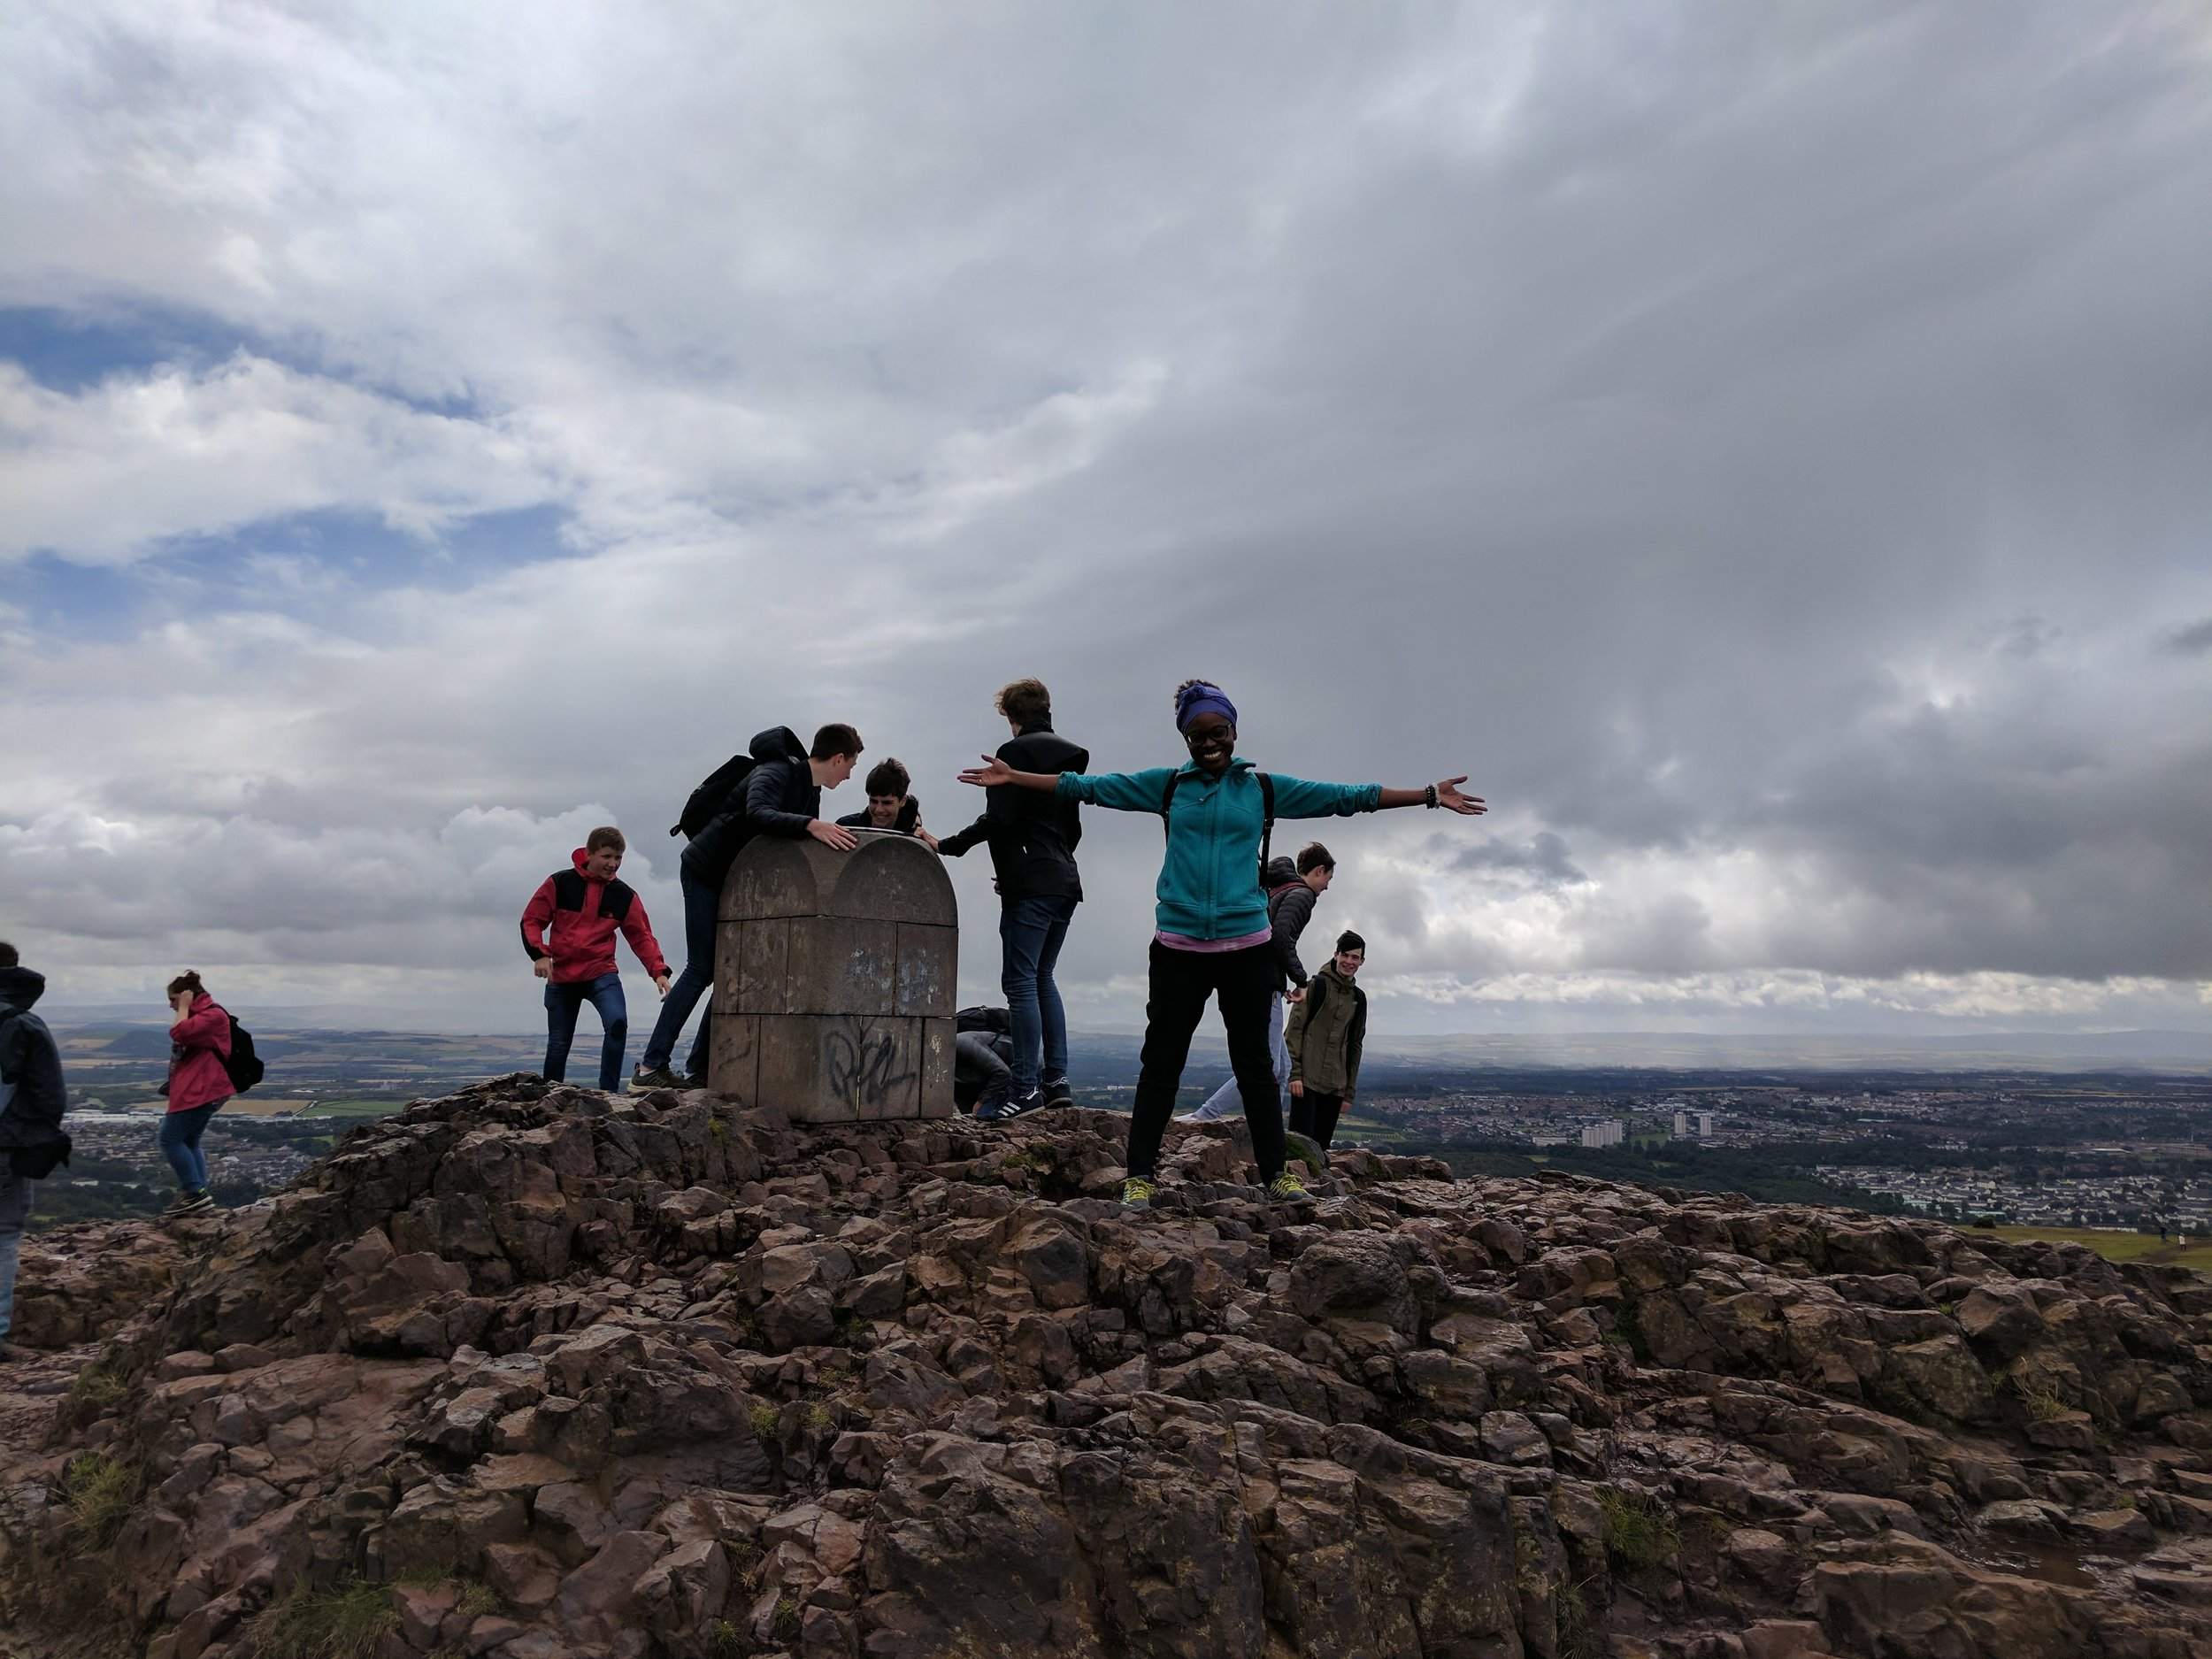 At the summit of Arthur's Seat.